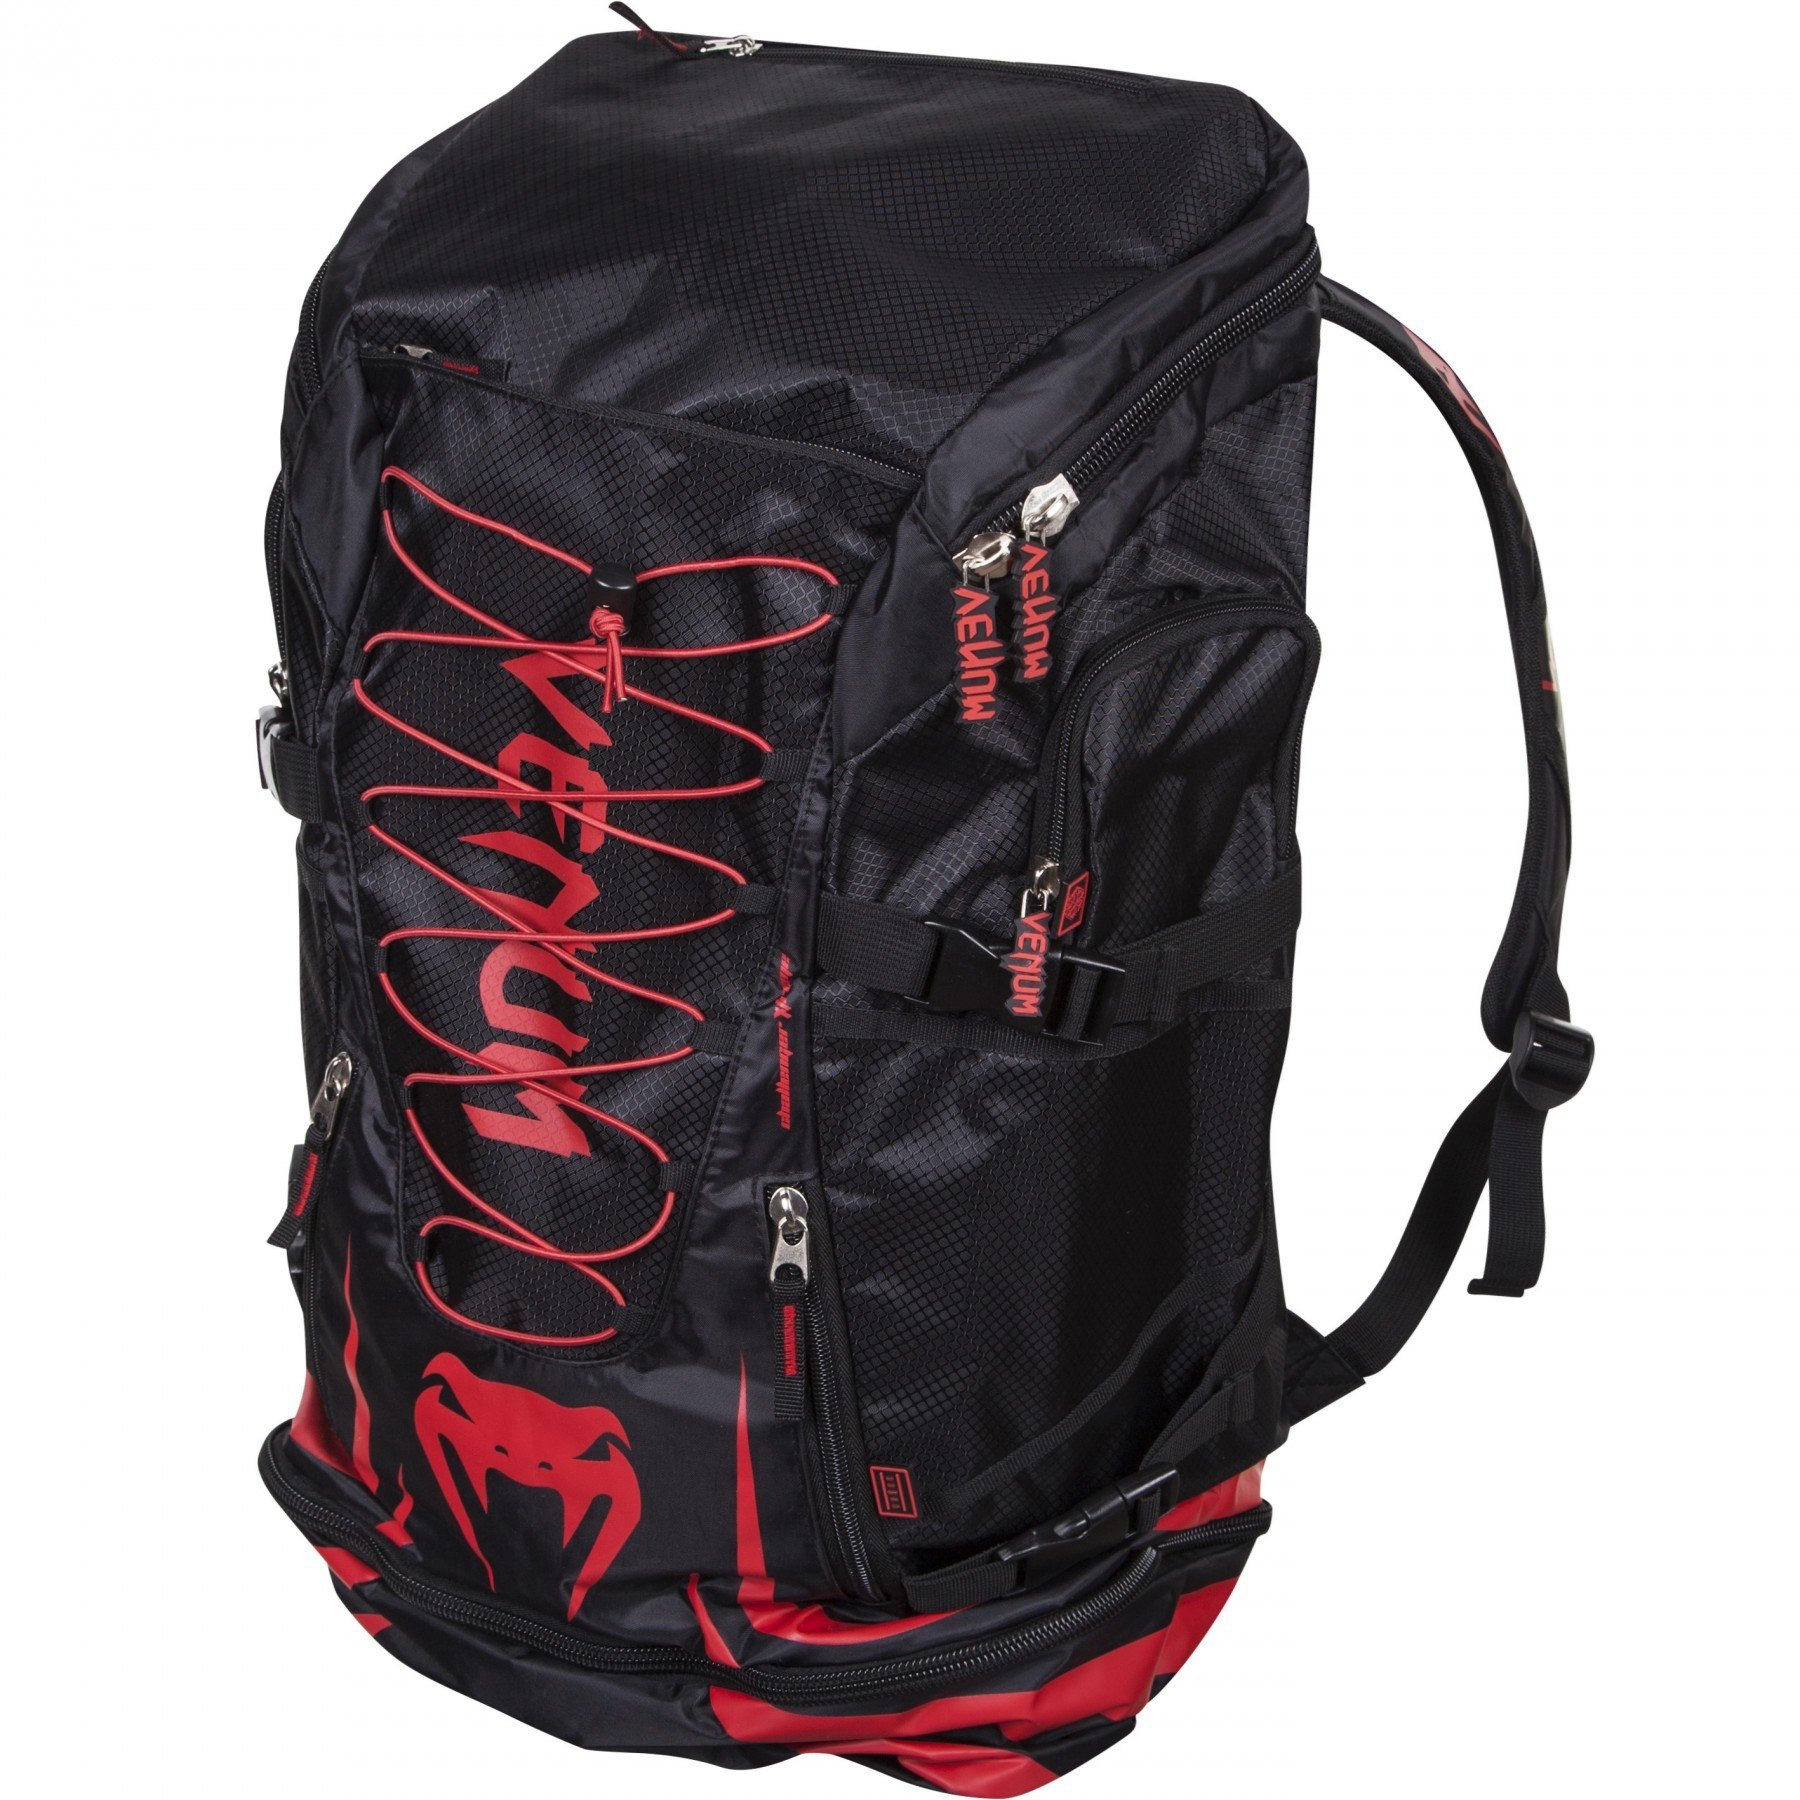 VENUM CHALLENGER XTREM BACKPACK - BLACK/RED